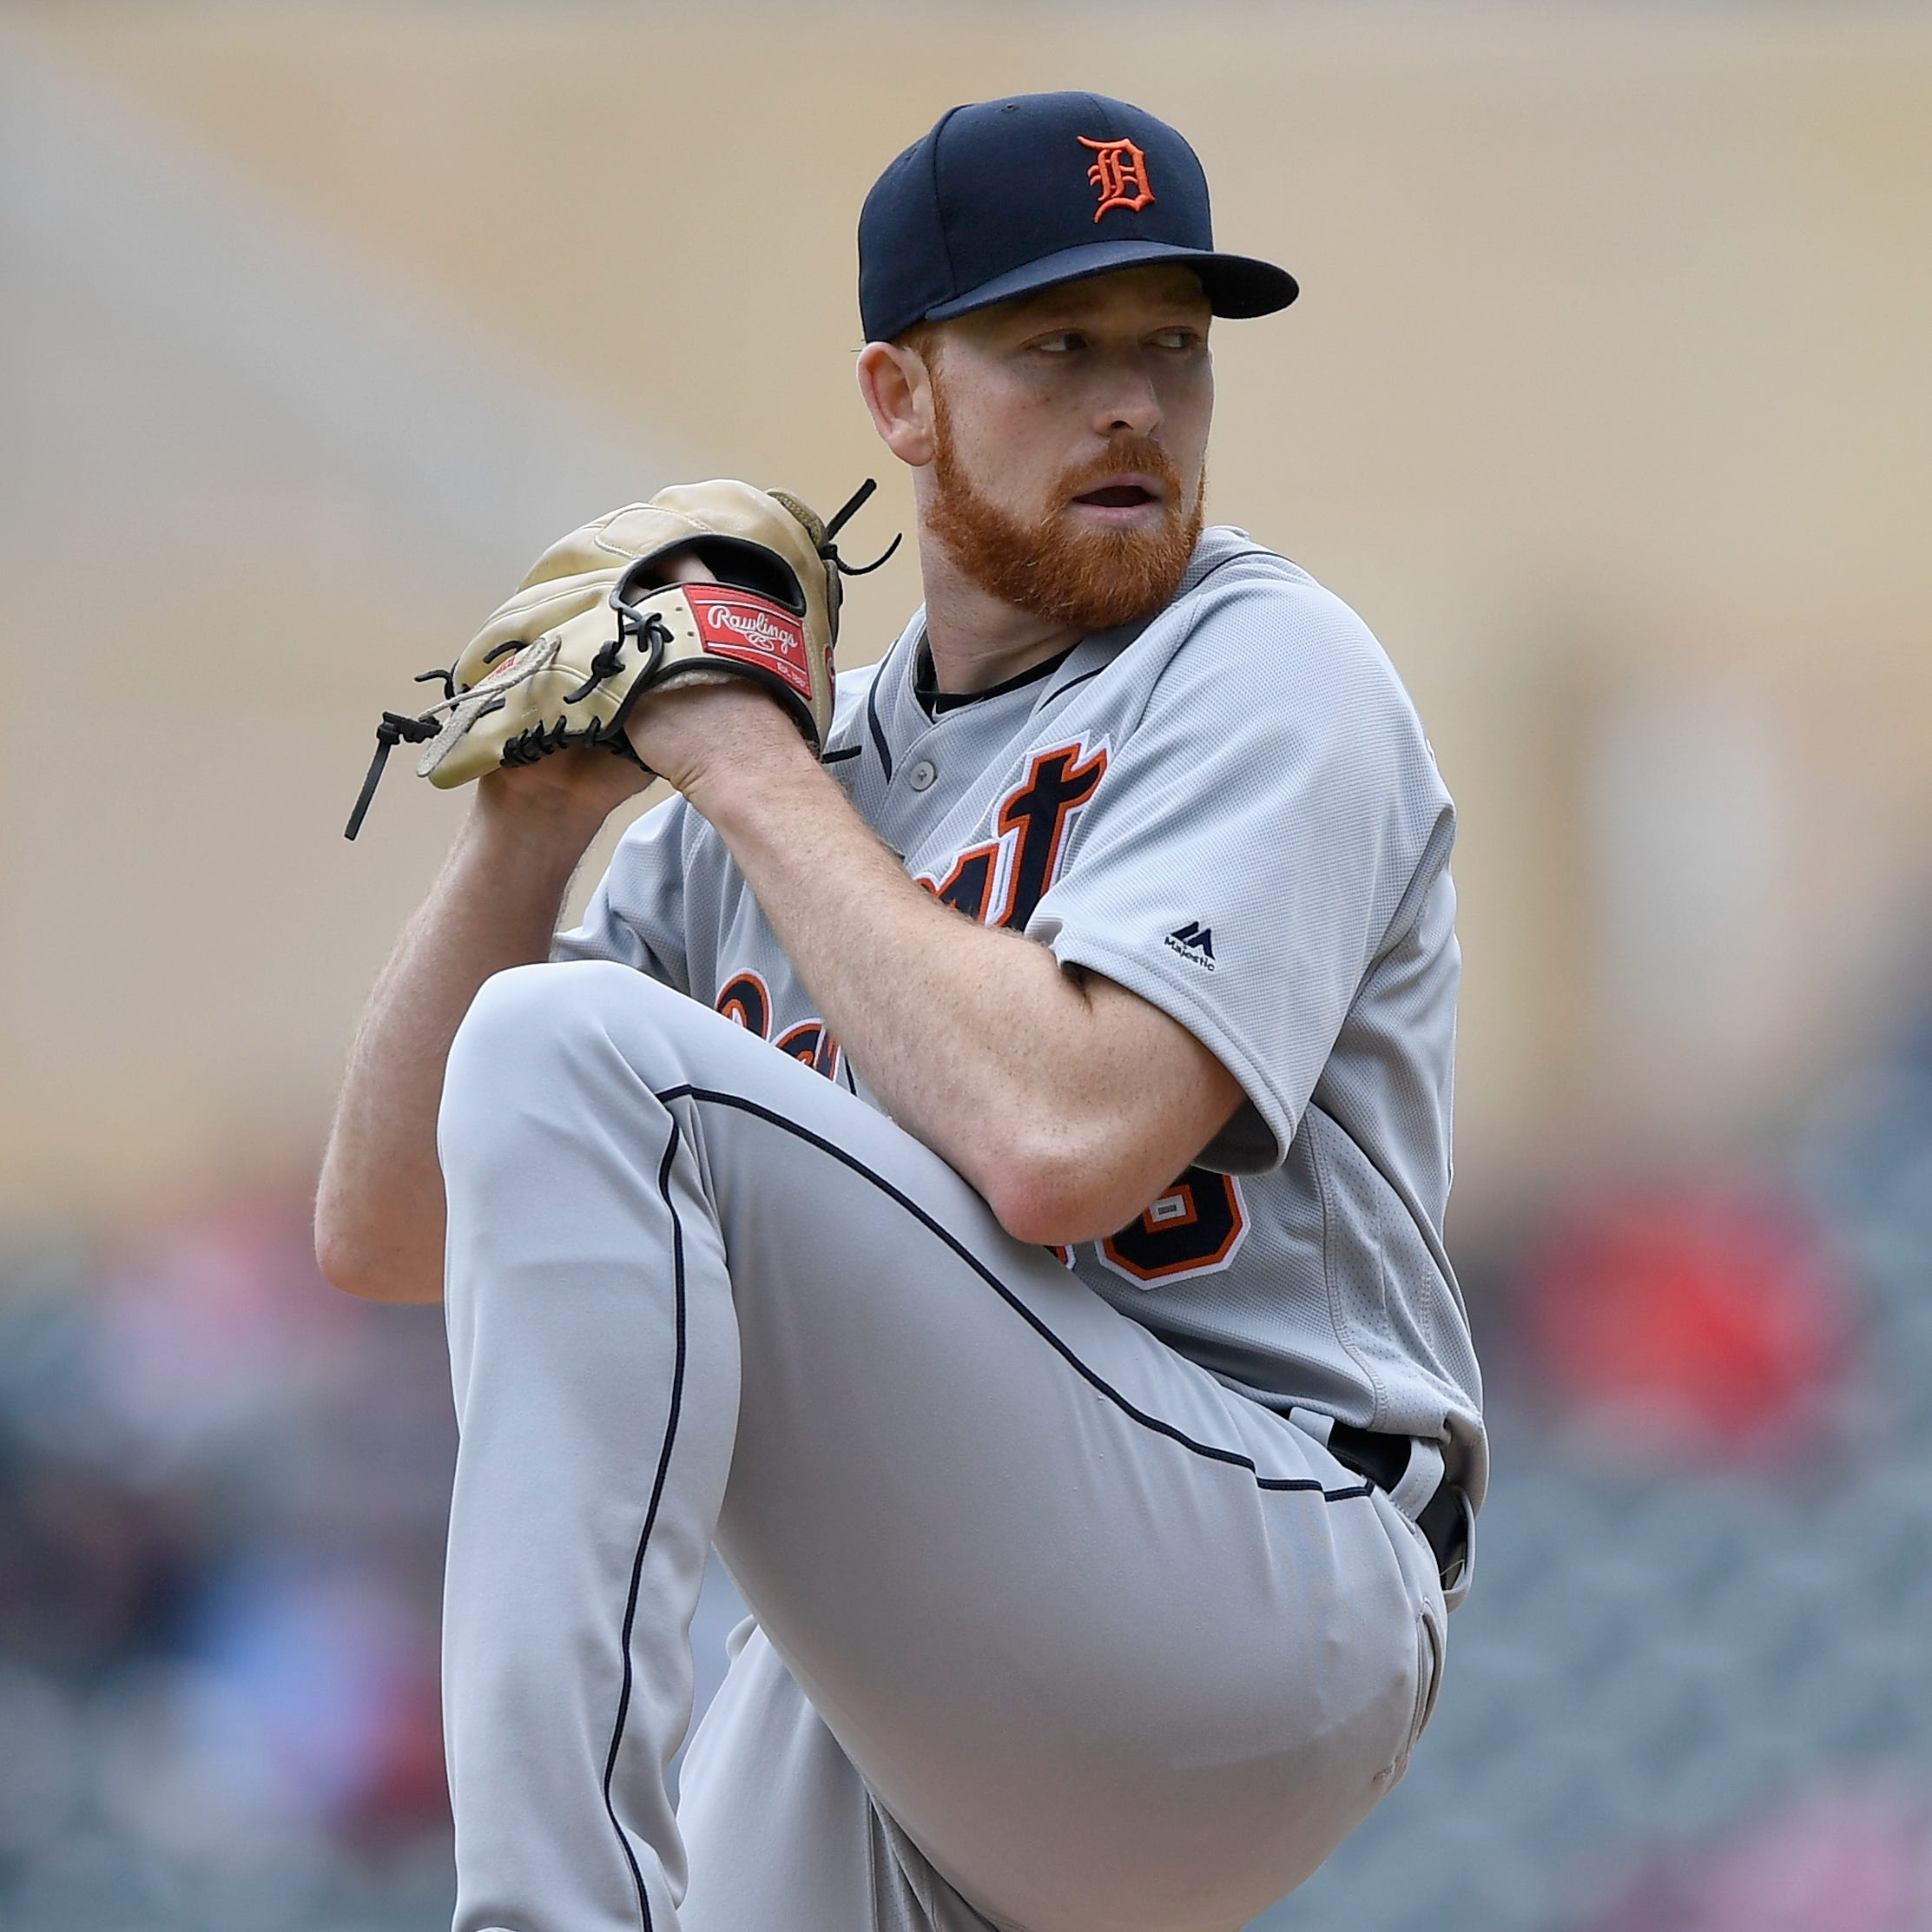 Detroit Tigers vs. New York Mets: Live updates, scoring